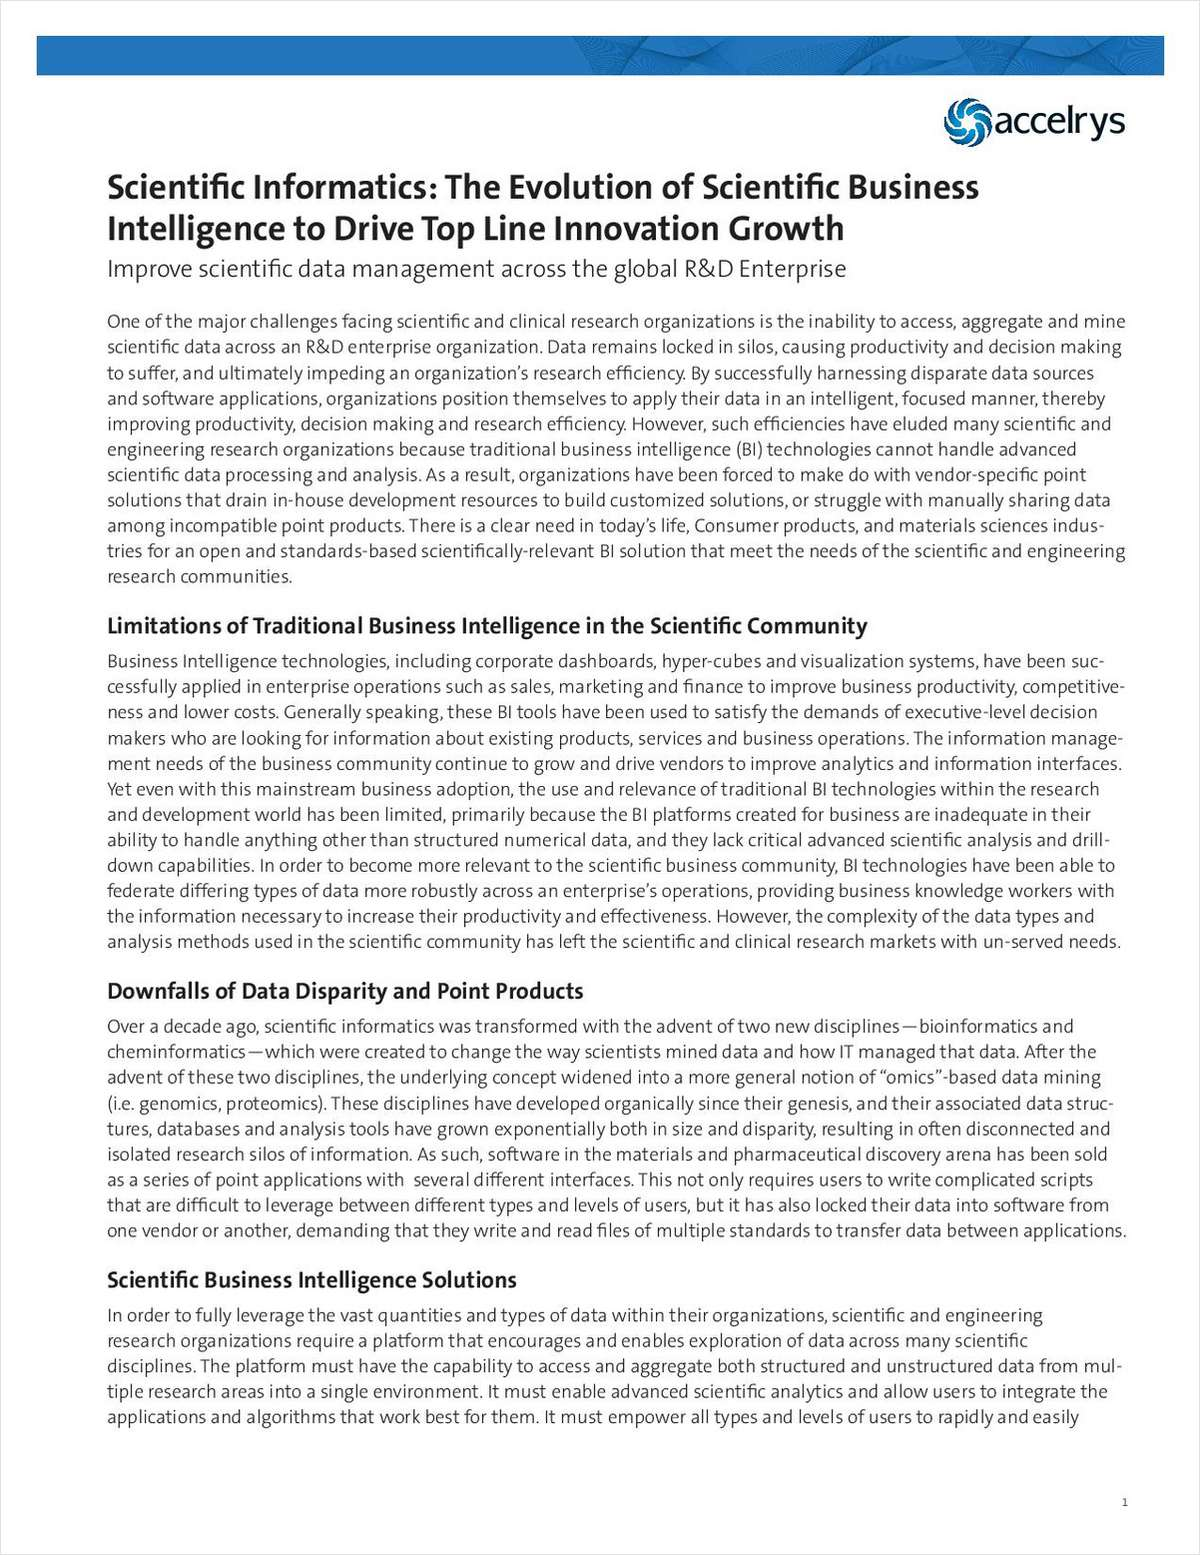 How Scientific Business Intelligence Can Drive Top Line Innovation Growth